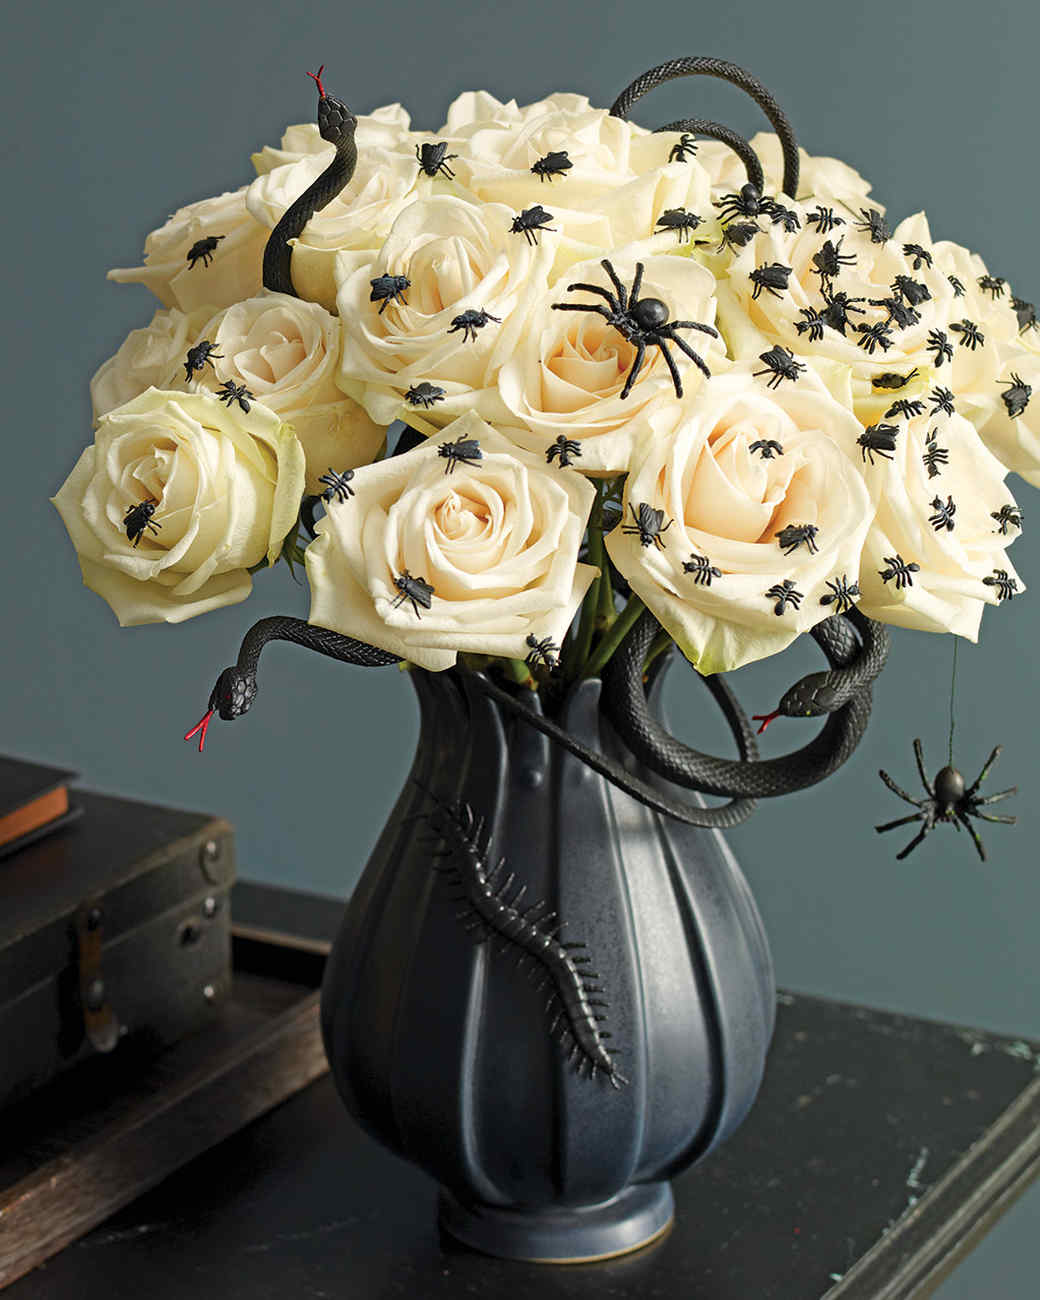 deranged halloween centerpiece